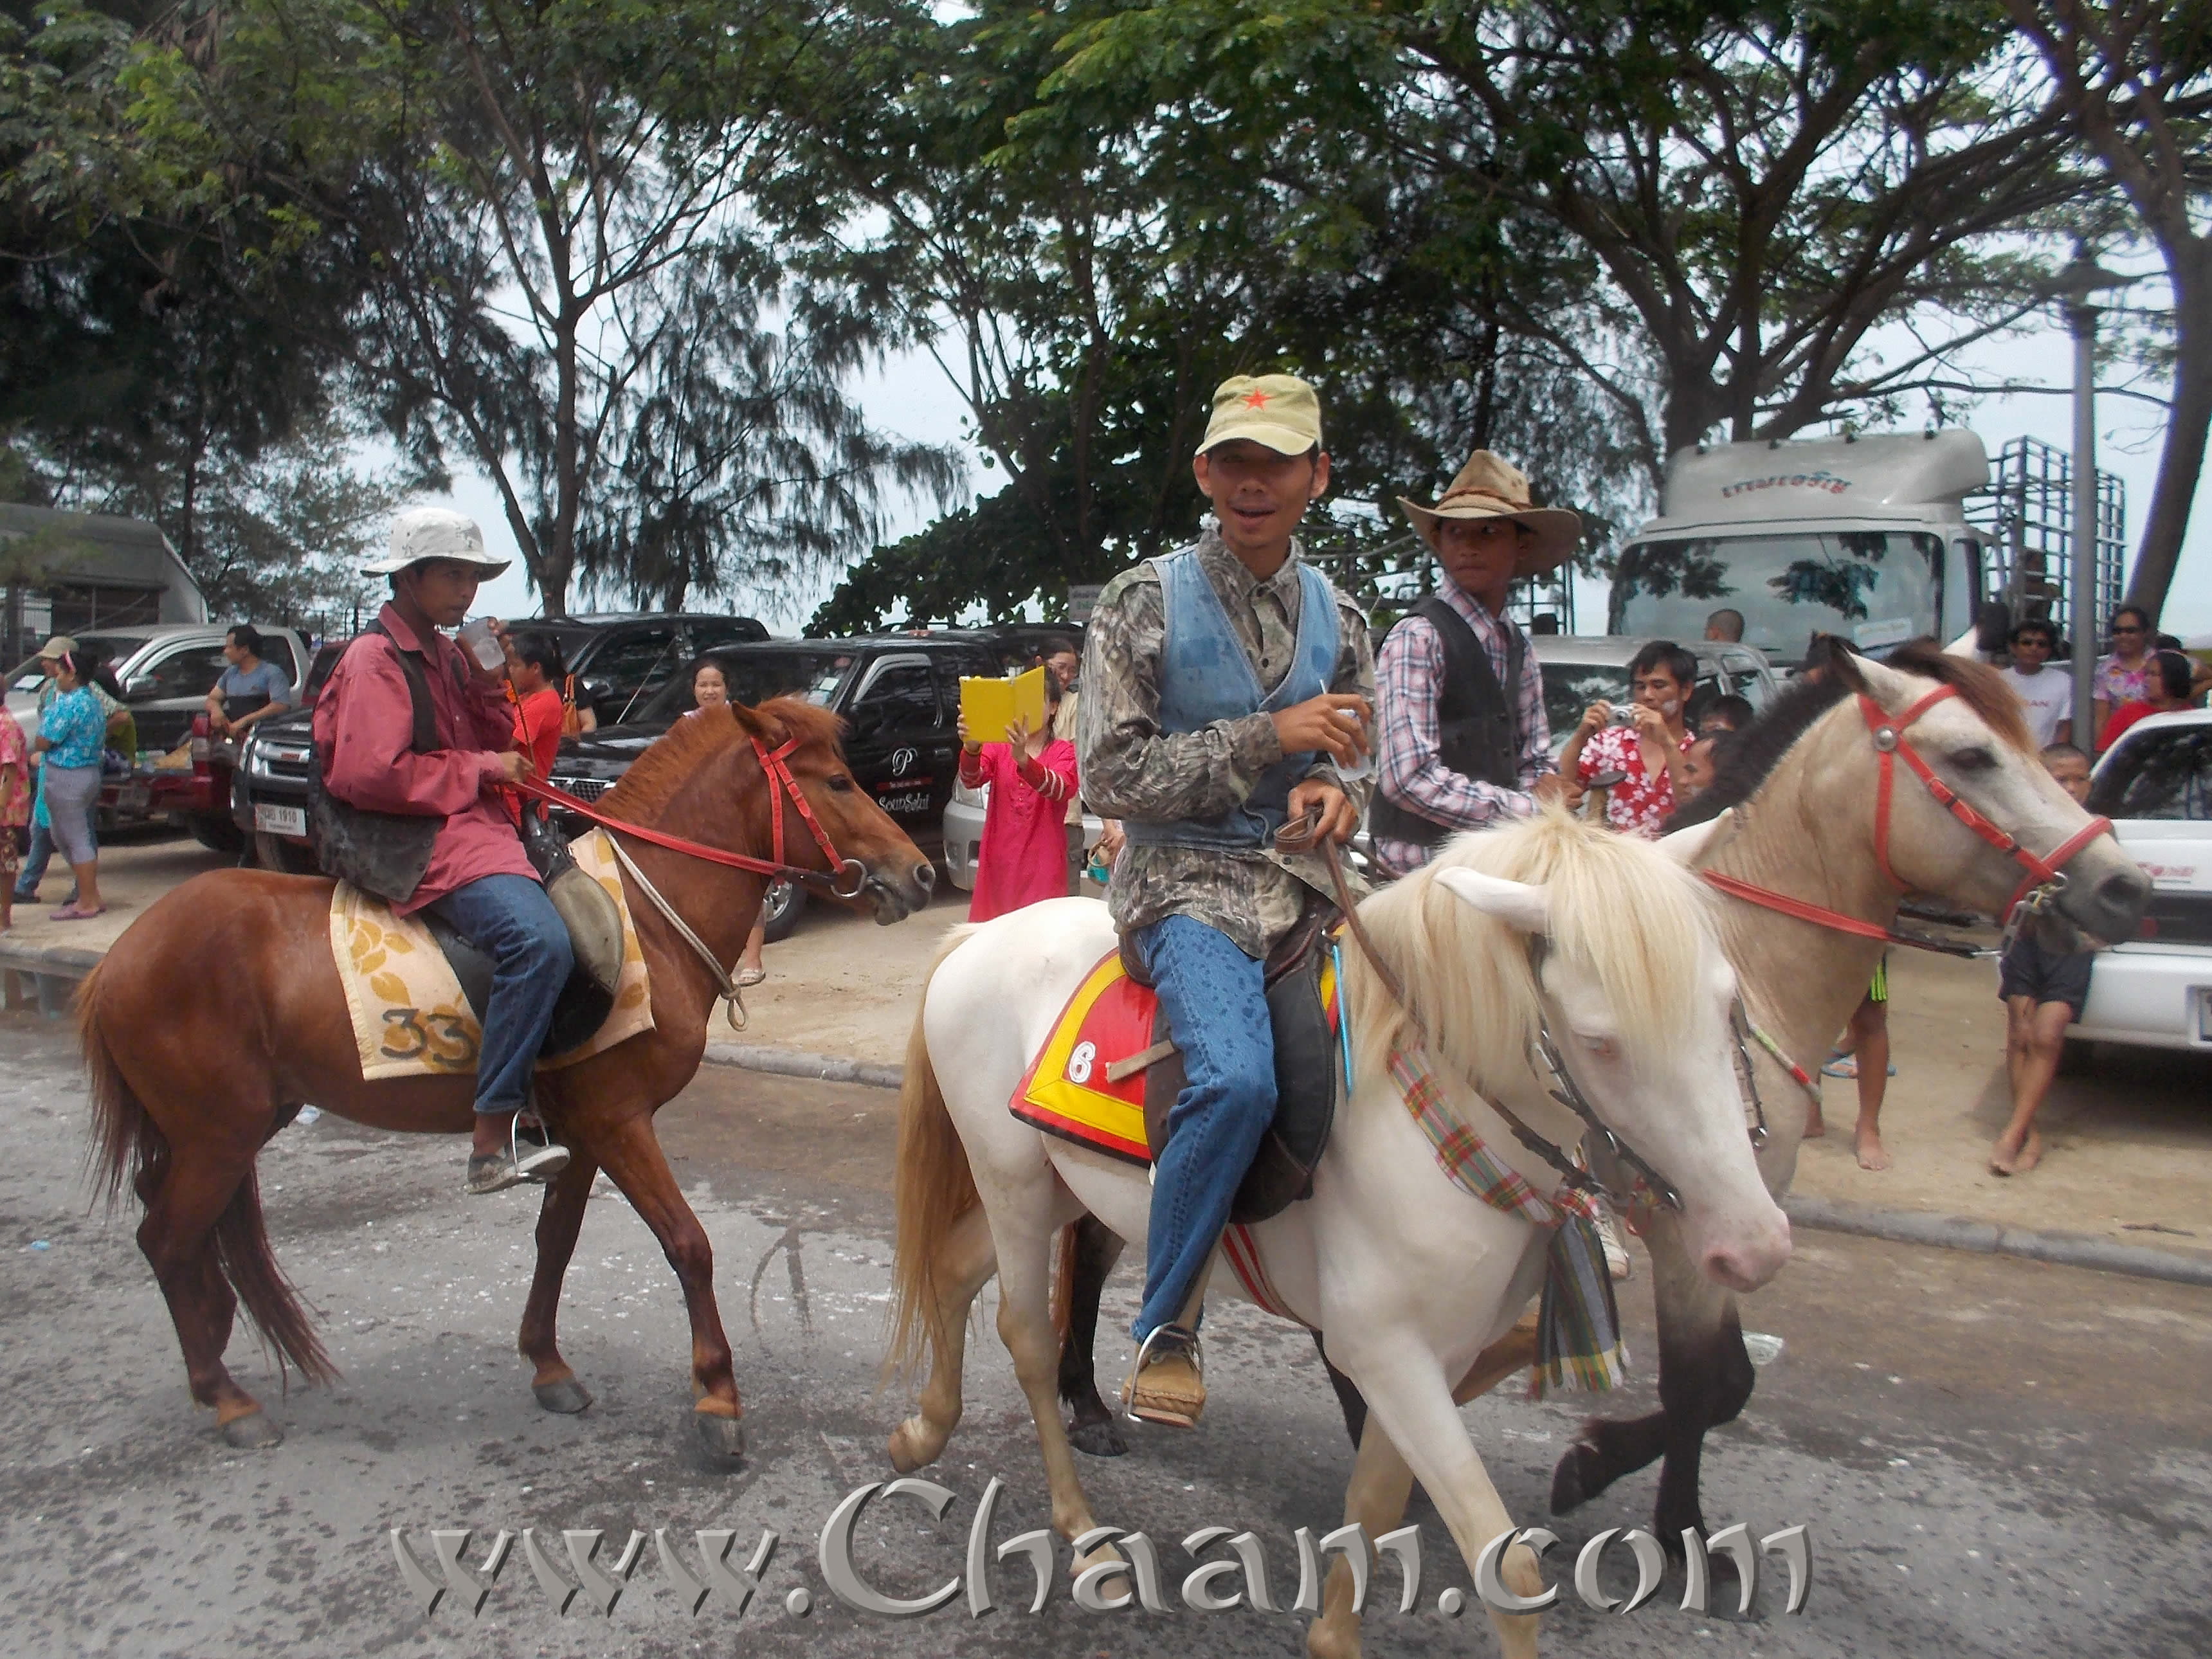 Cha-Am beach horses at Songkran